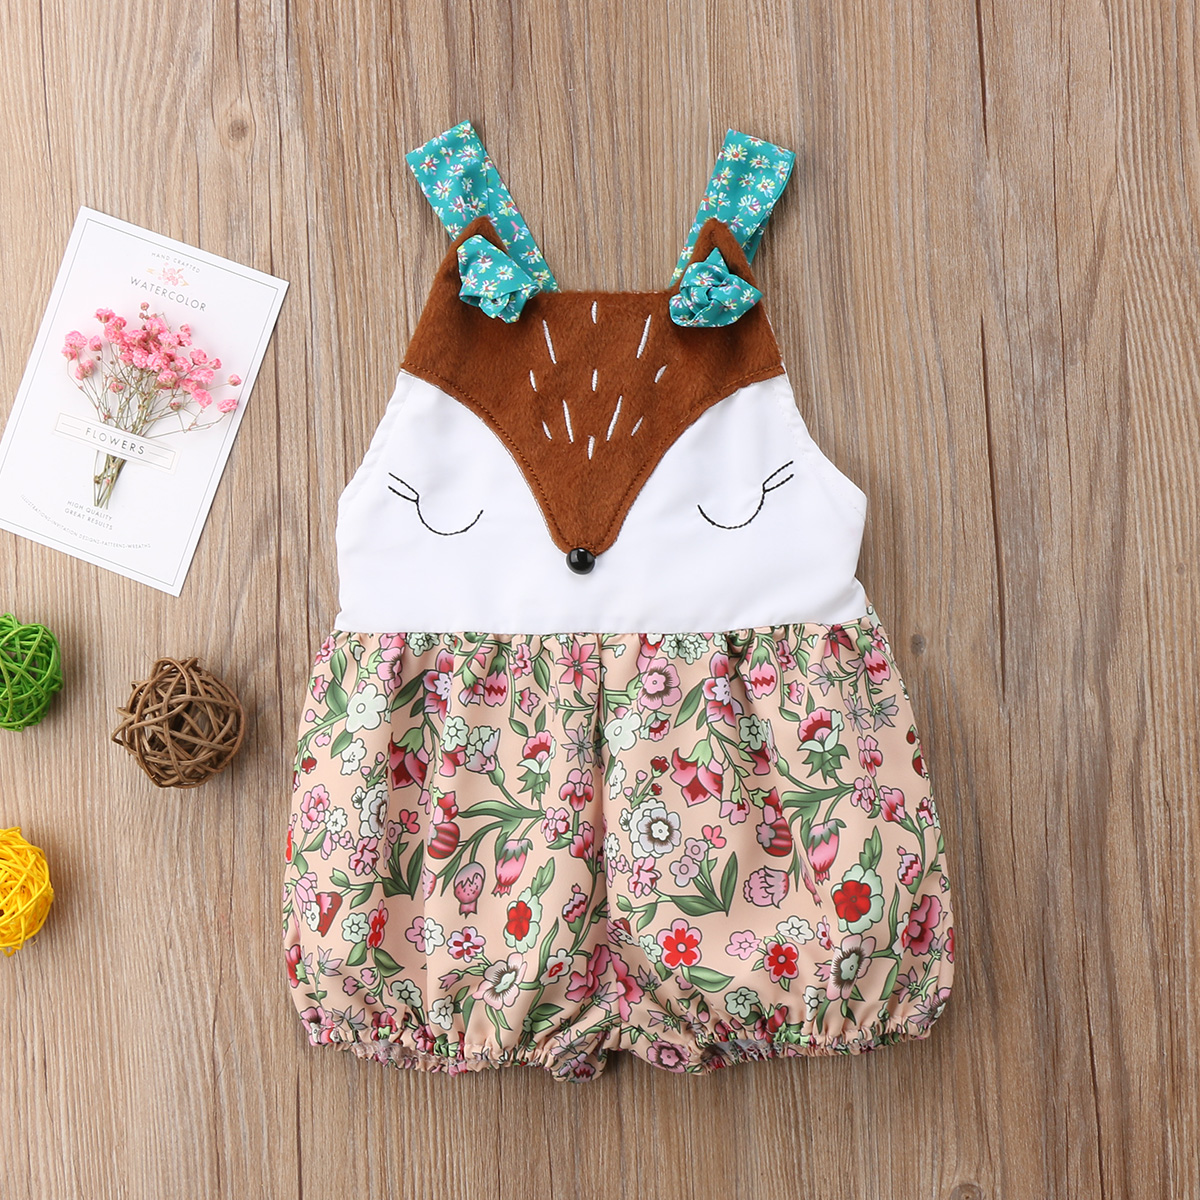 Sweet Infant Baby Girls Fox Sleeveless Floral Strap Playsuit Rompers Jumpsuit Cute Outfits Sunsuit 3-18M